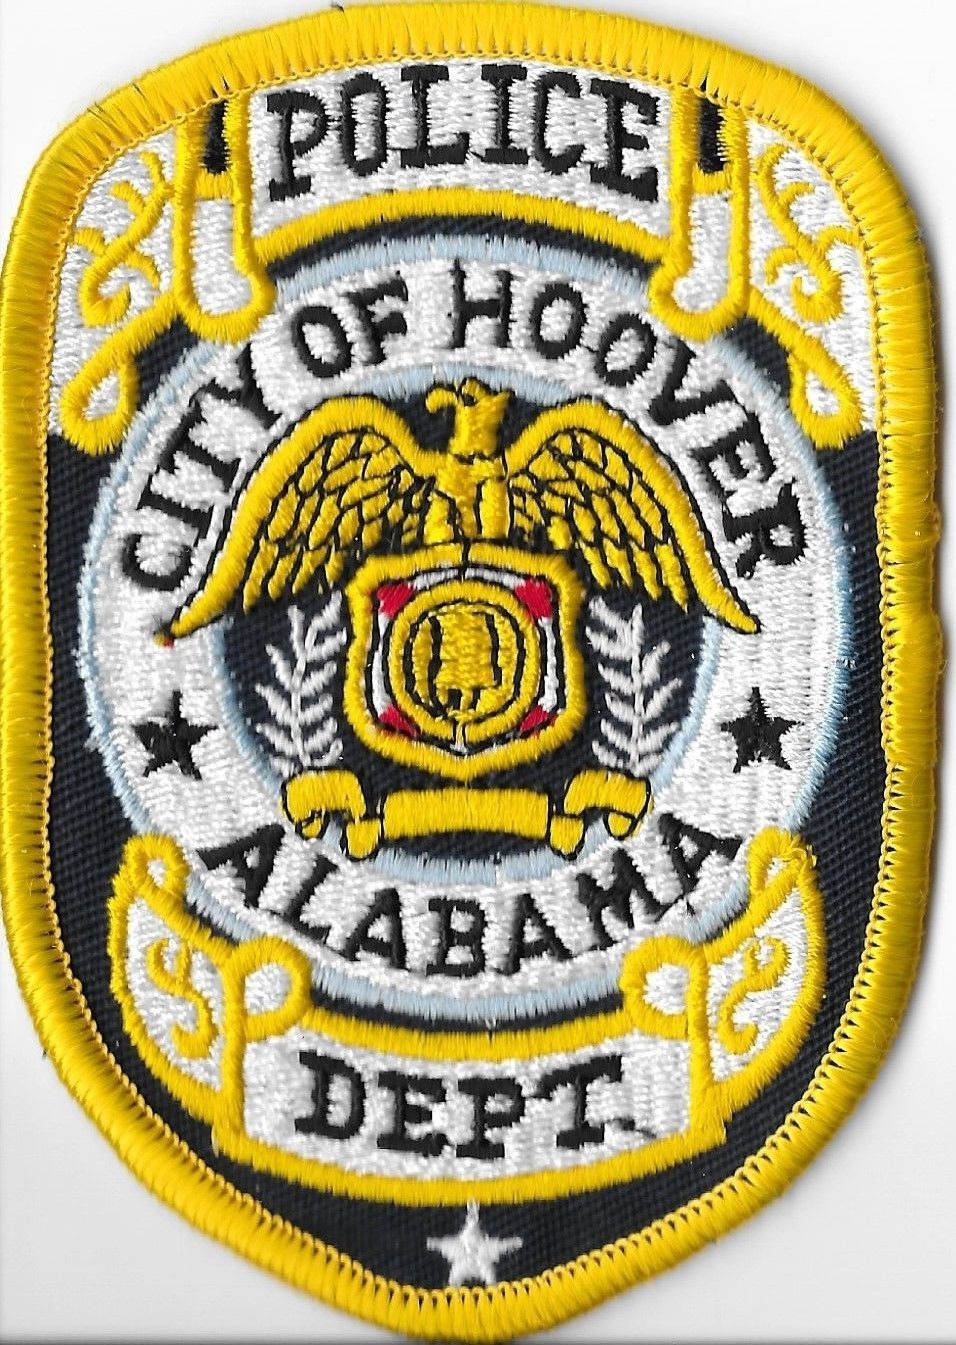 Hoover Police Department, AL Patch • $4 99 - PicClick